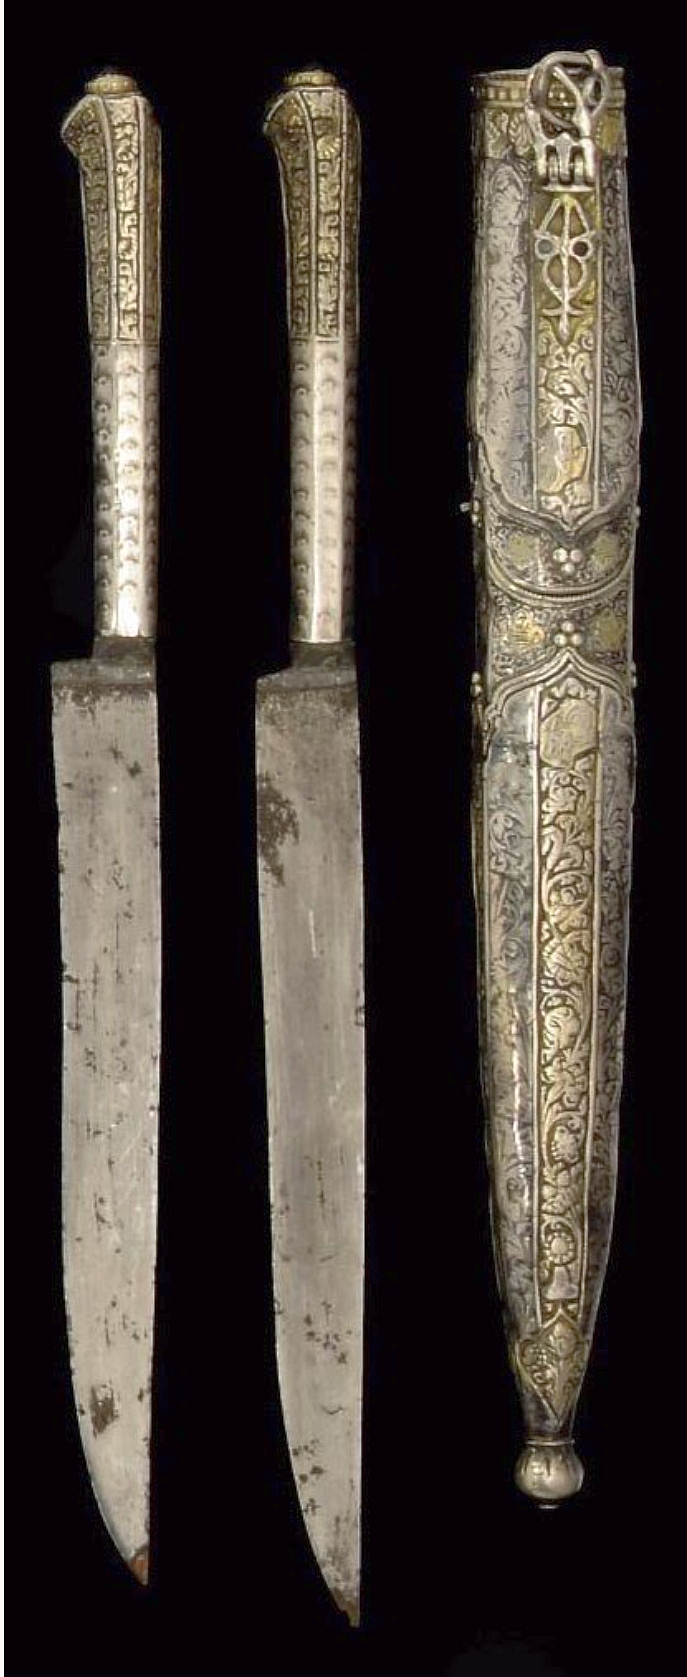 Ottoman traveling knives (trousse), 1703 to 1730, each with straight blade, the faceted handle with gilt floral decoration to upper section, capped at end with garnet, sheath of silver with niello and silver gilt panels engraved with floral decoration and stamped with the tugra of Ahmed III . knife 7 1/2in (19cm) long; whole 8 1/2in (21.5cm) long.